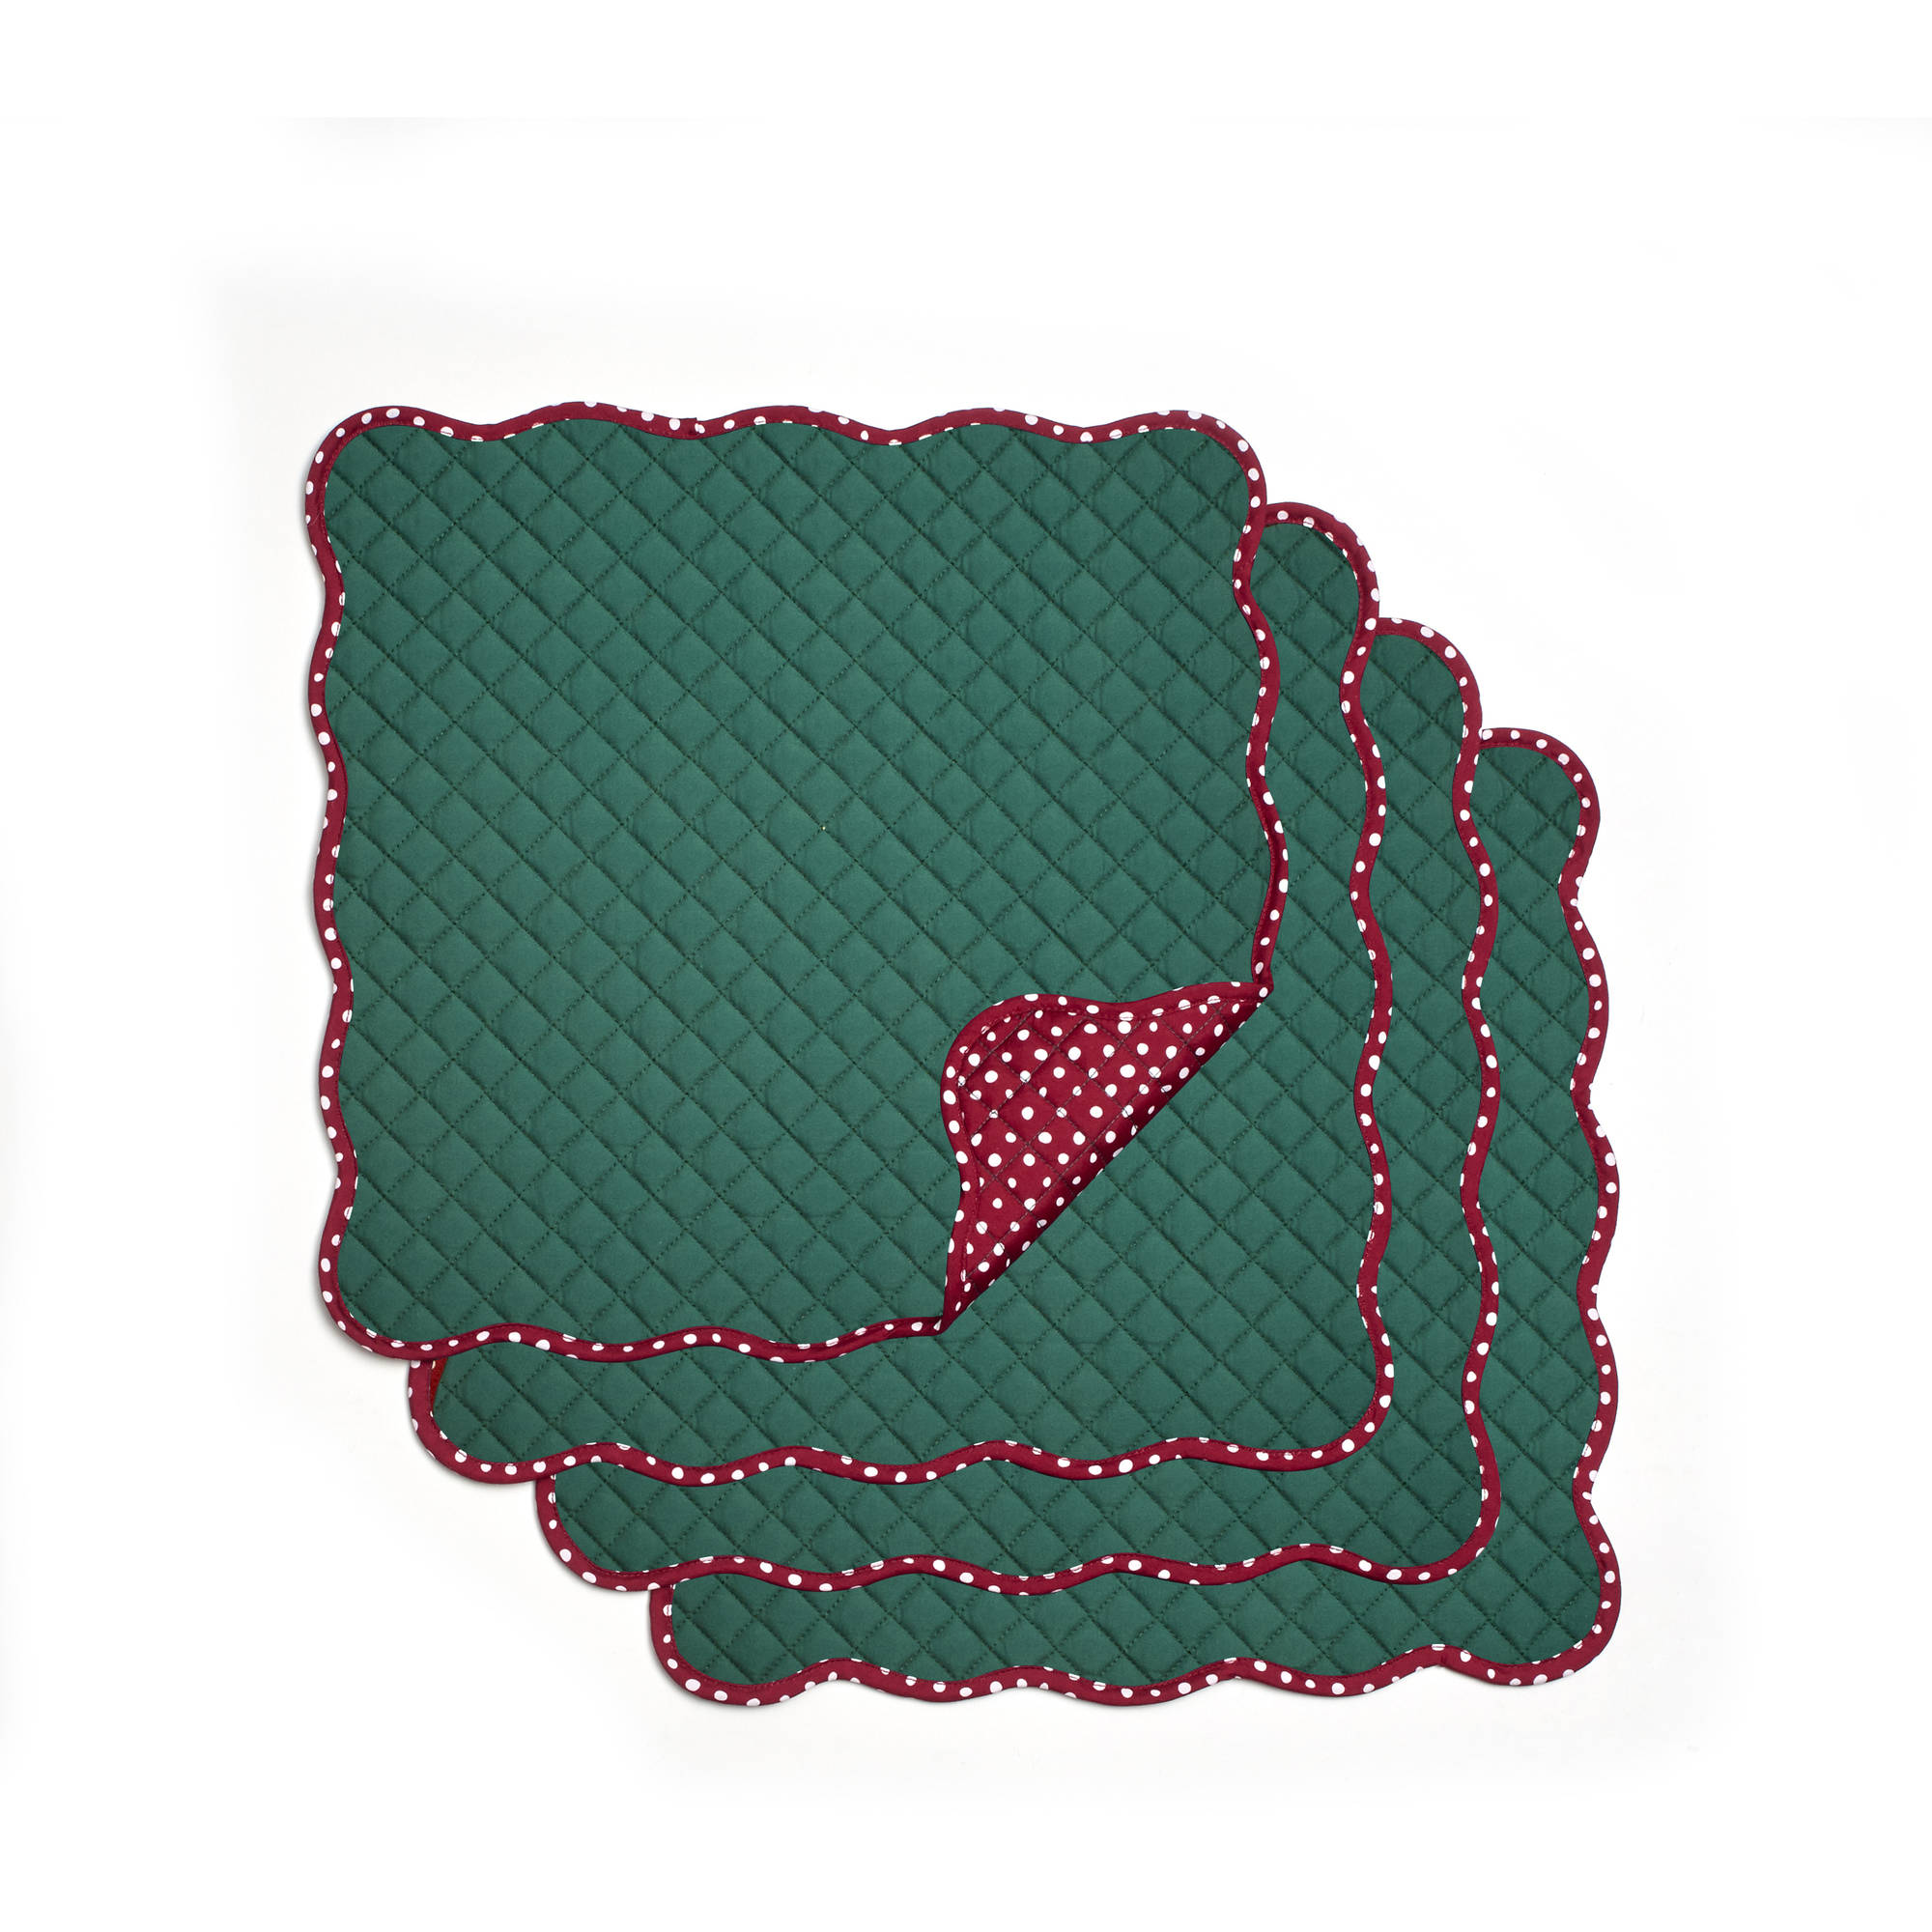 Pioneer Woman Solid Retro Quilted Reversible Placemats, Pack of 4 by